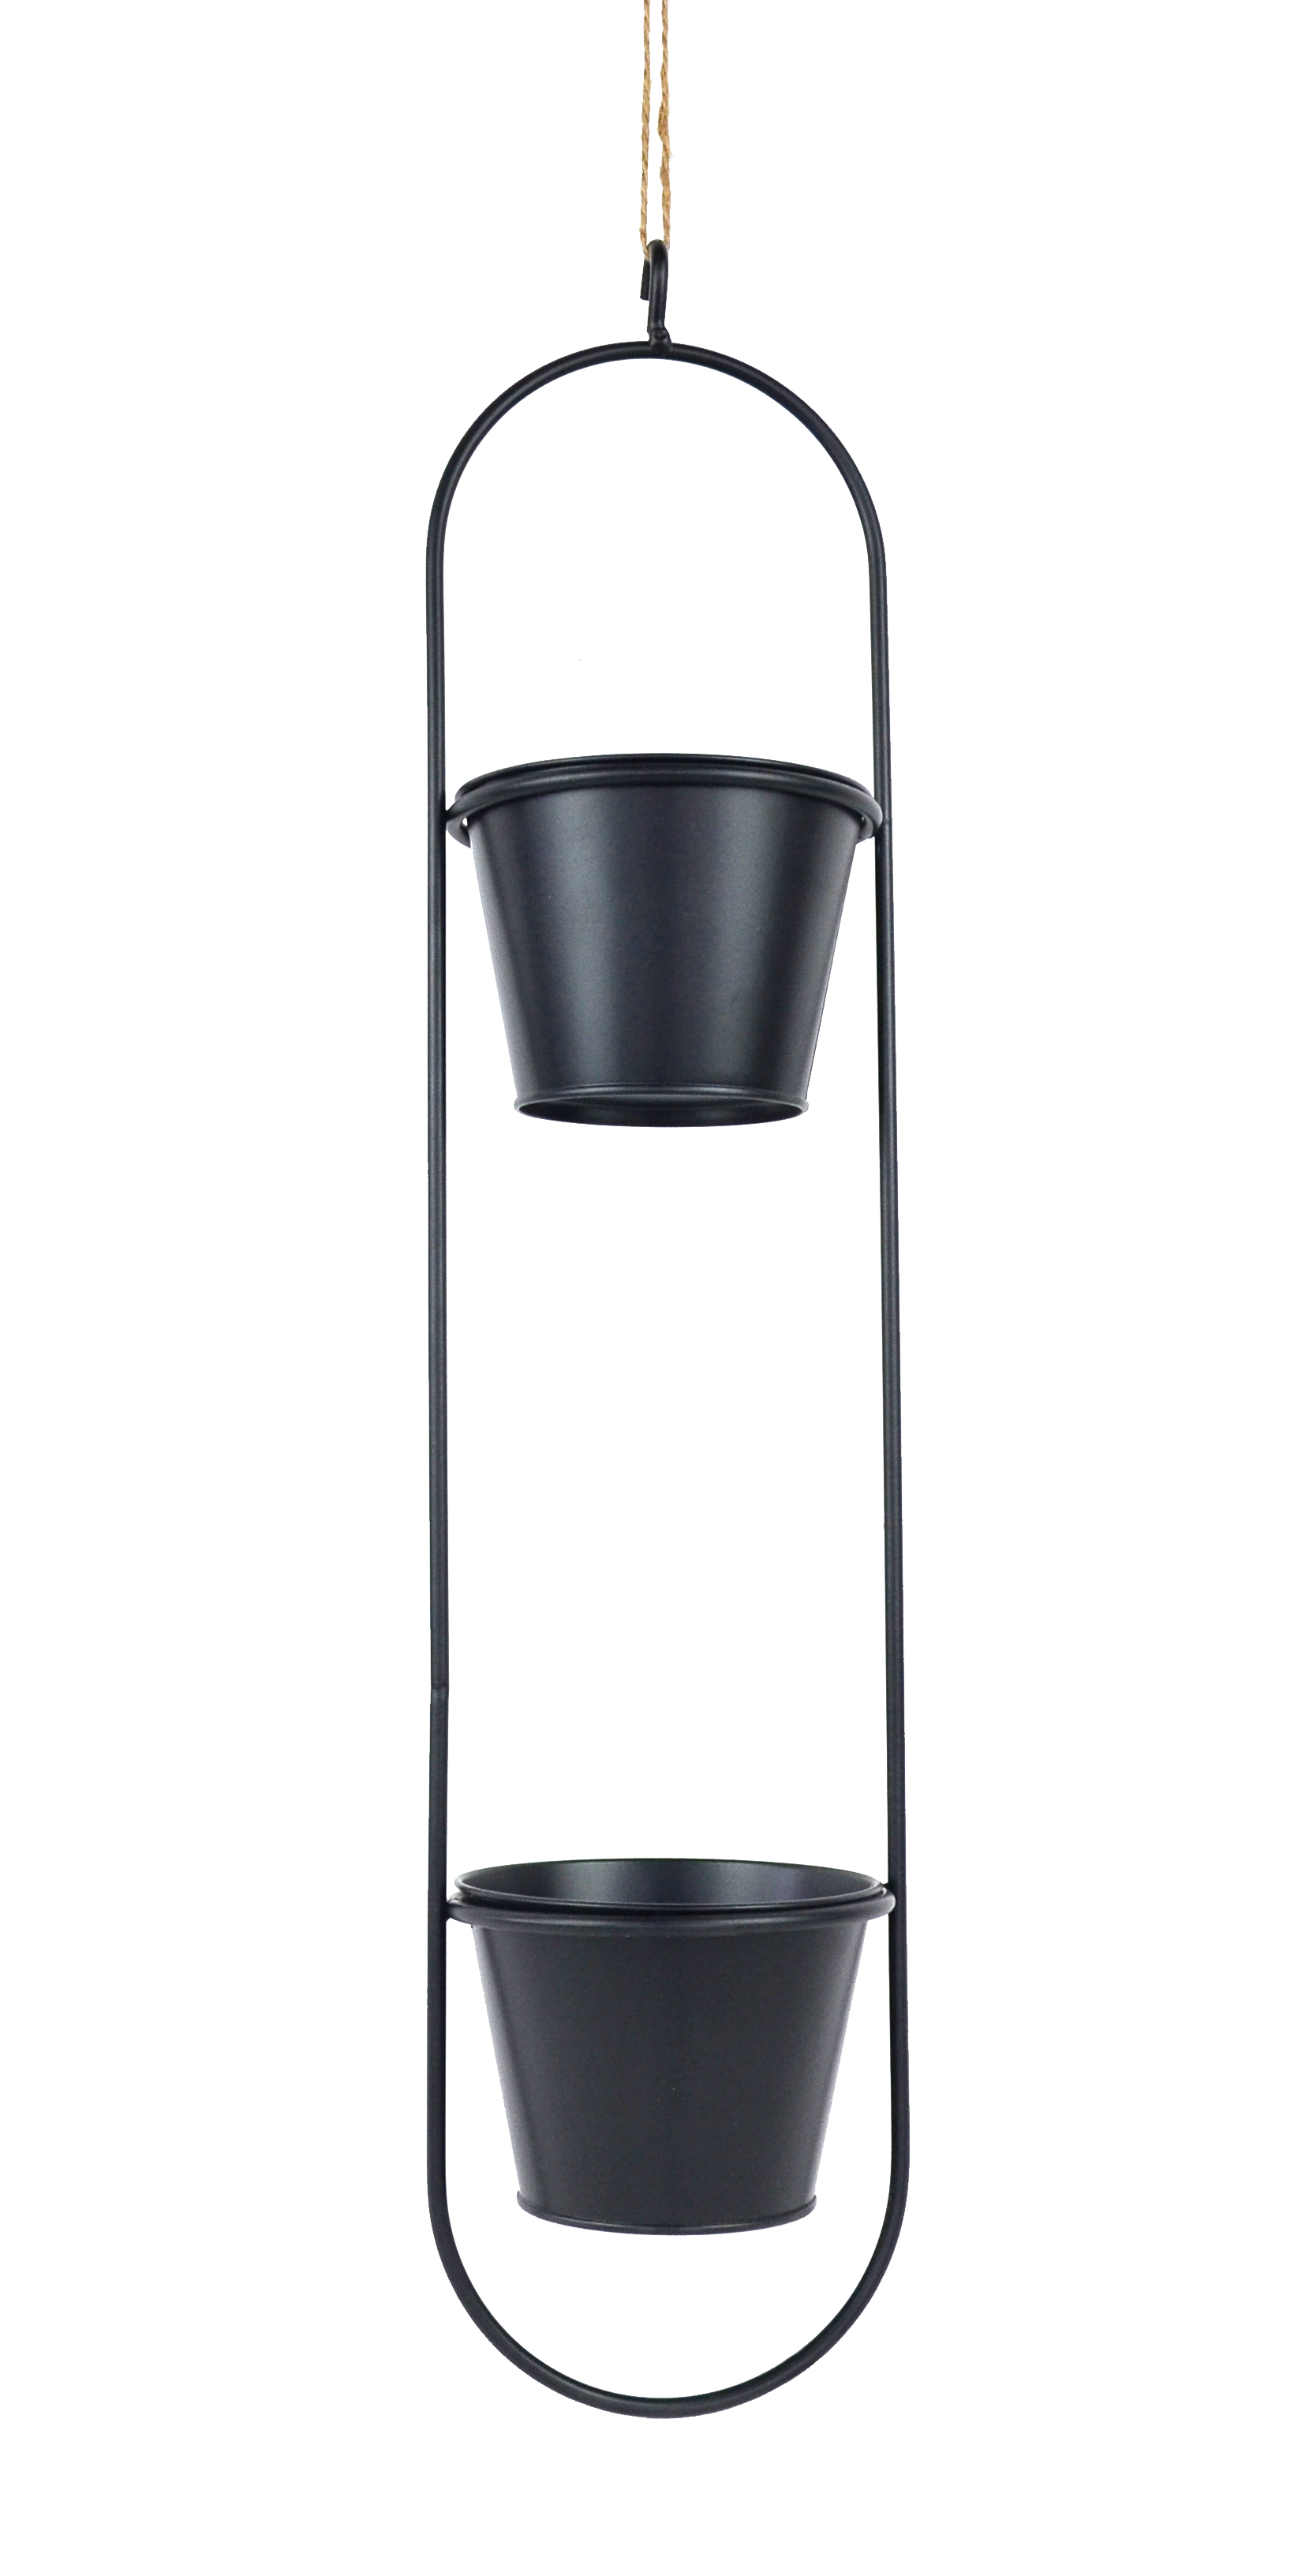 metal flower stand or flower pot